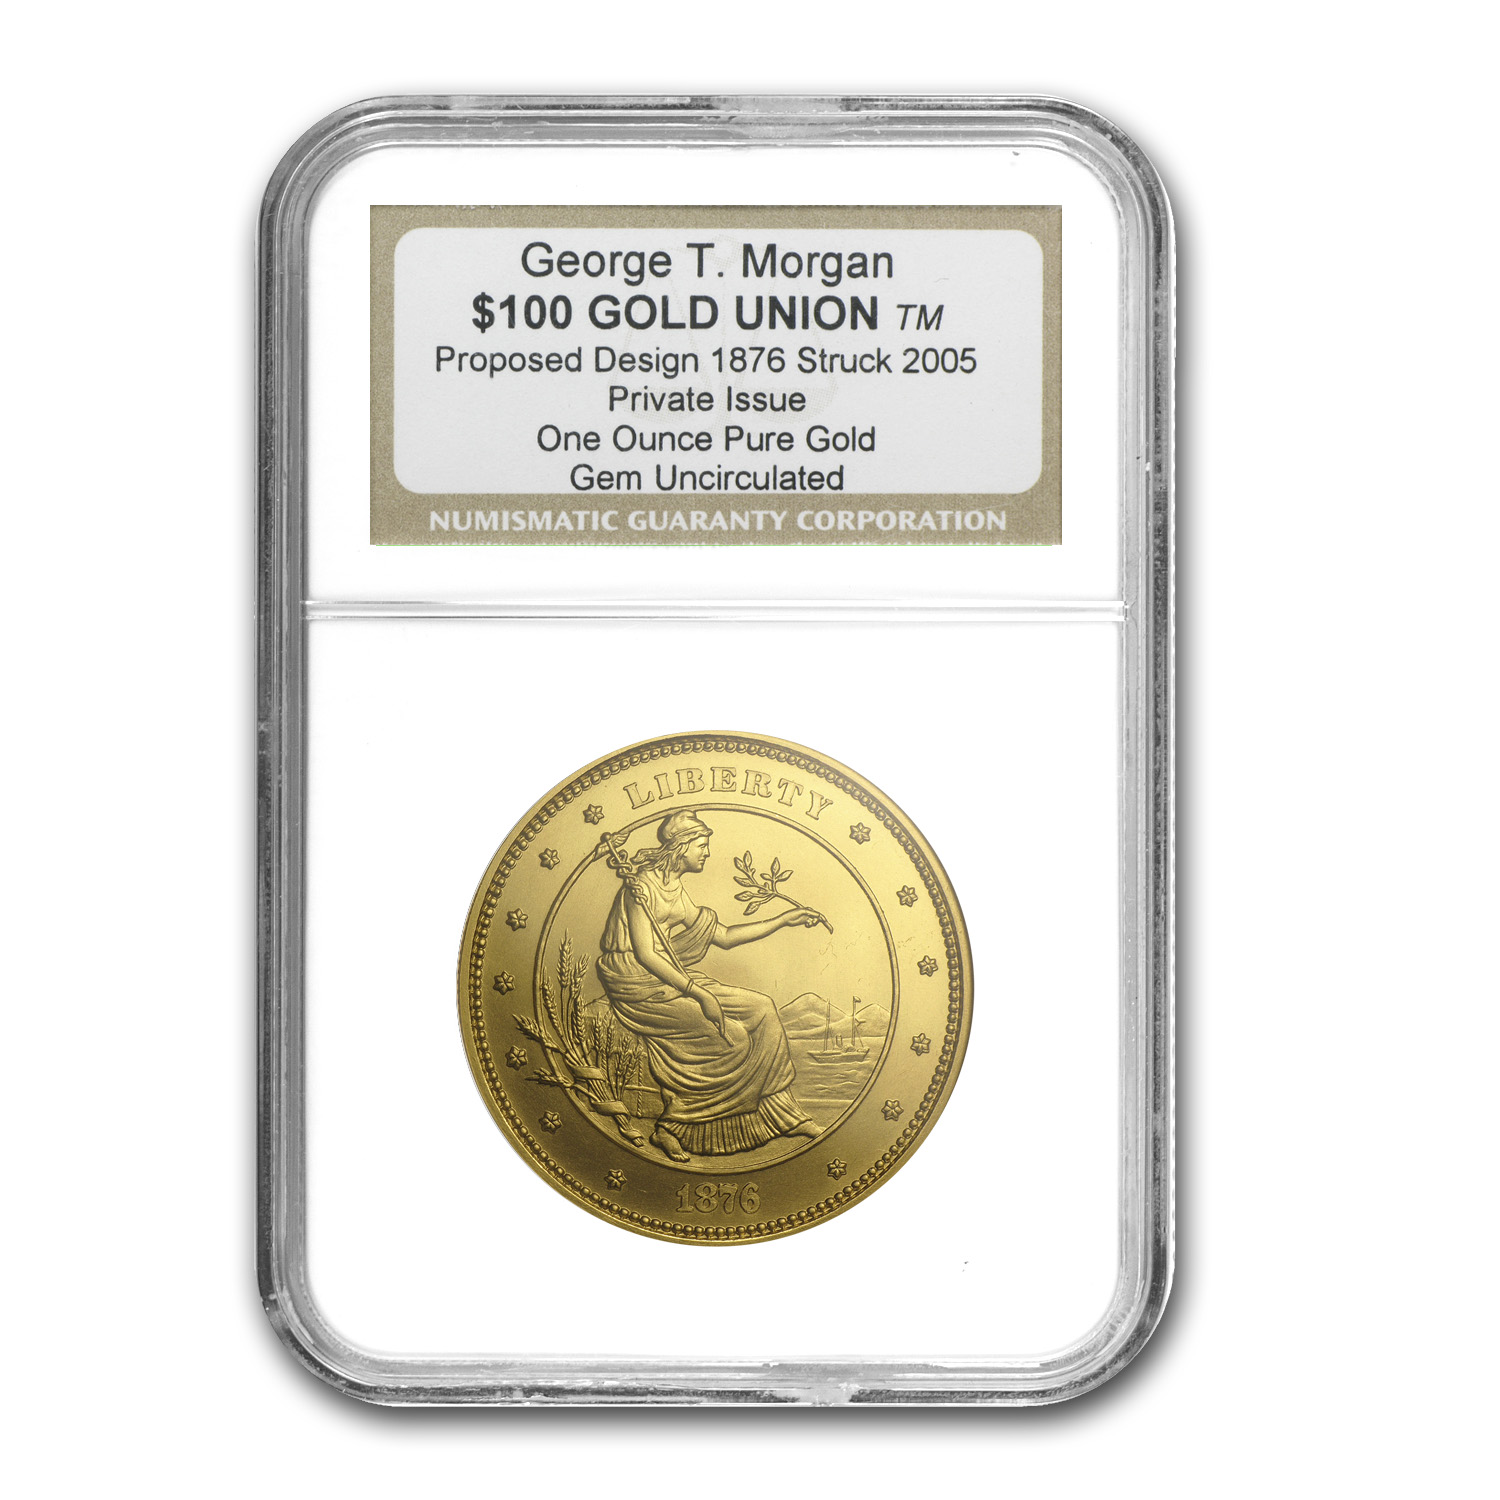 1 oz Gold Round - $100 Gold Union George T. Morgan Gem Unc NGC